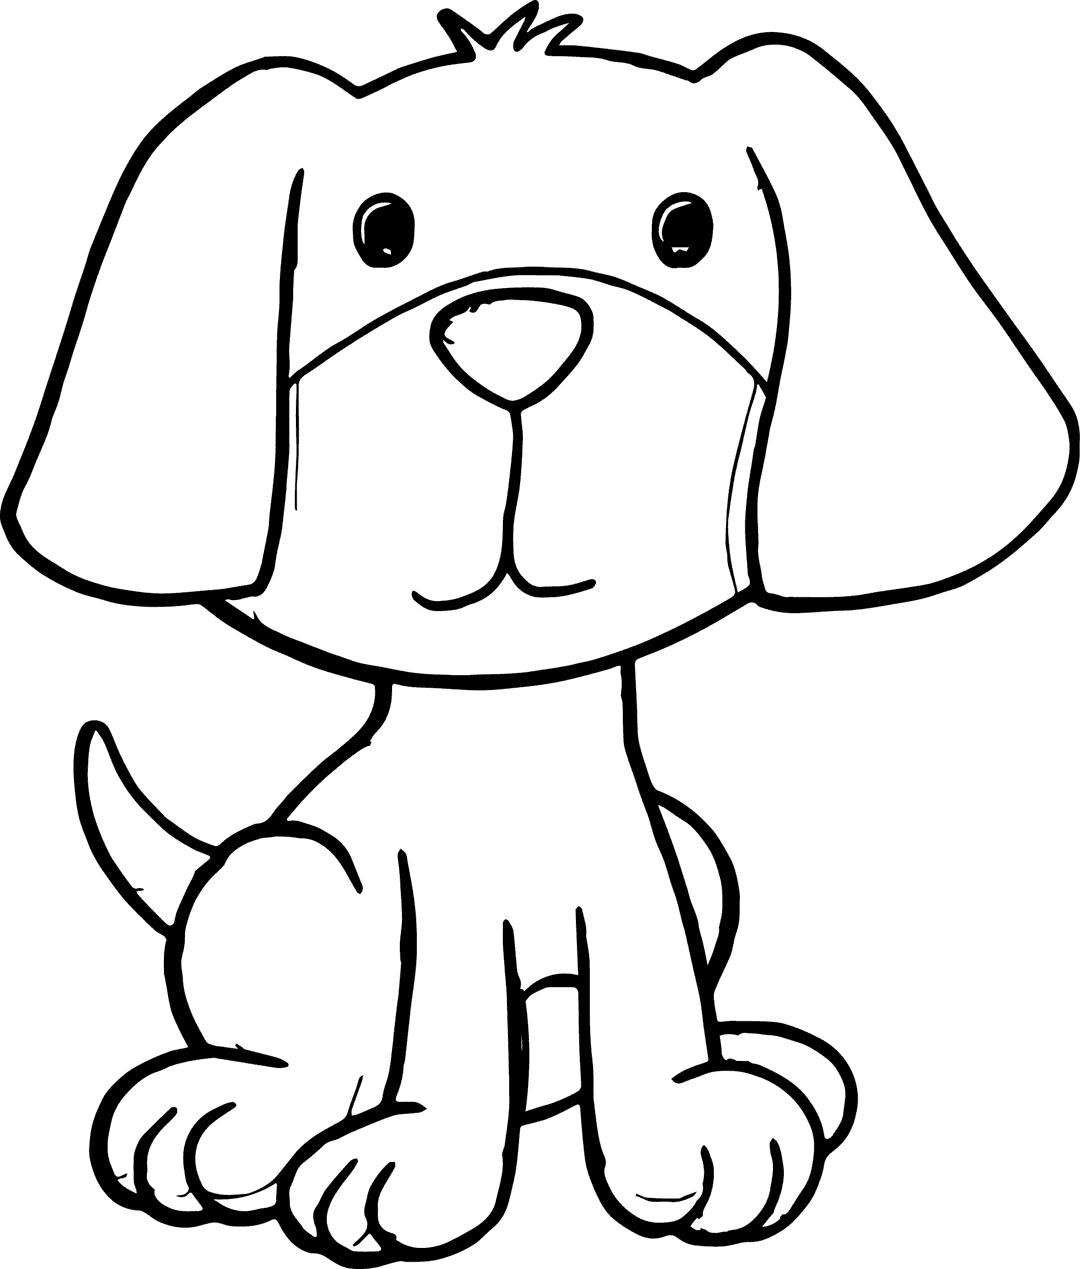 Puppy Coloring Pages - GetColoringPages.com | 1269x1080